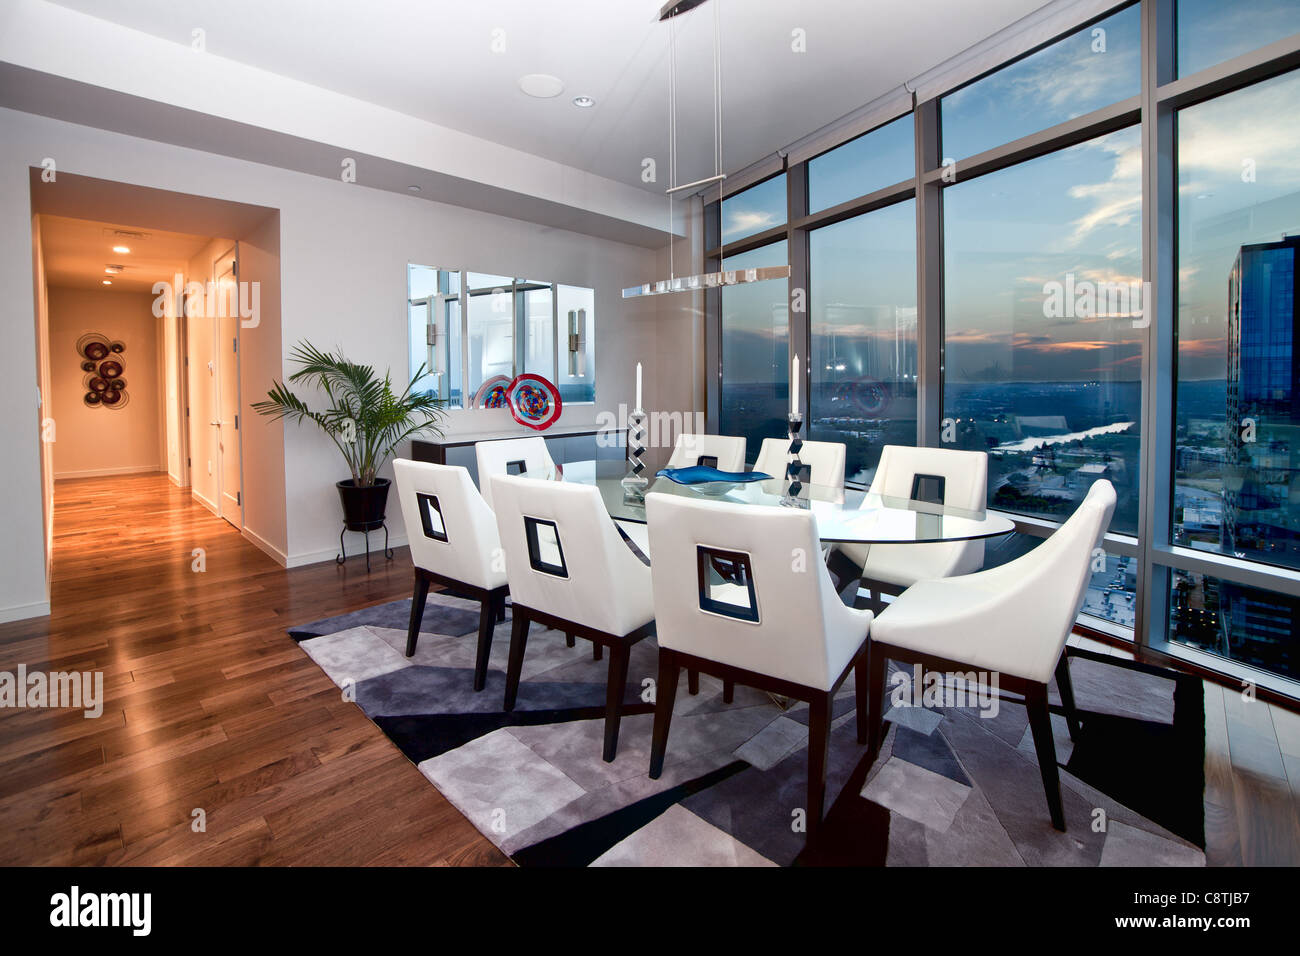 Great Dining Room In A Steel And Glass Luxury Condo Highrise In Austin, Texas  During Sunset